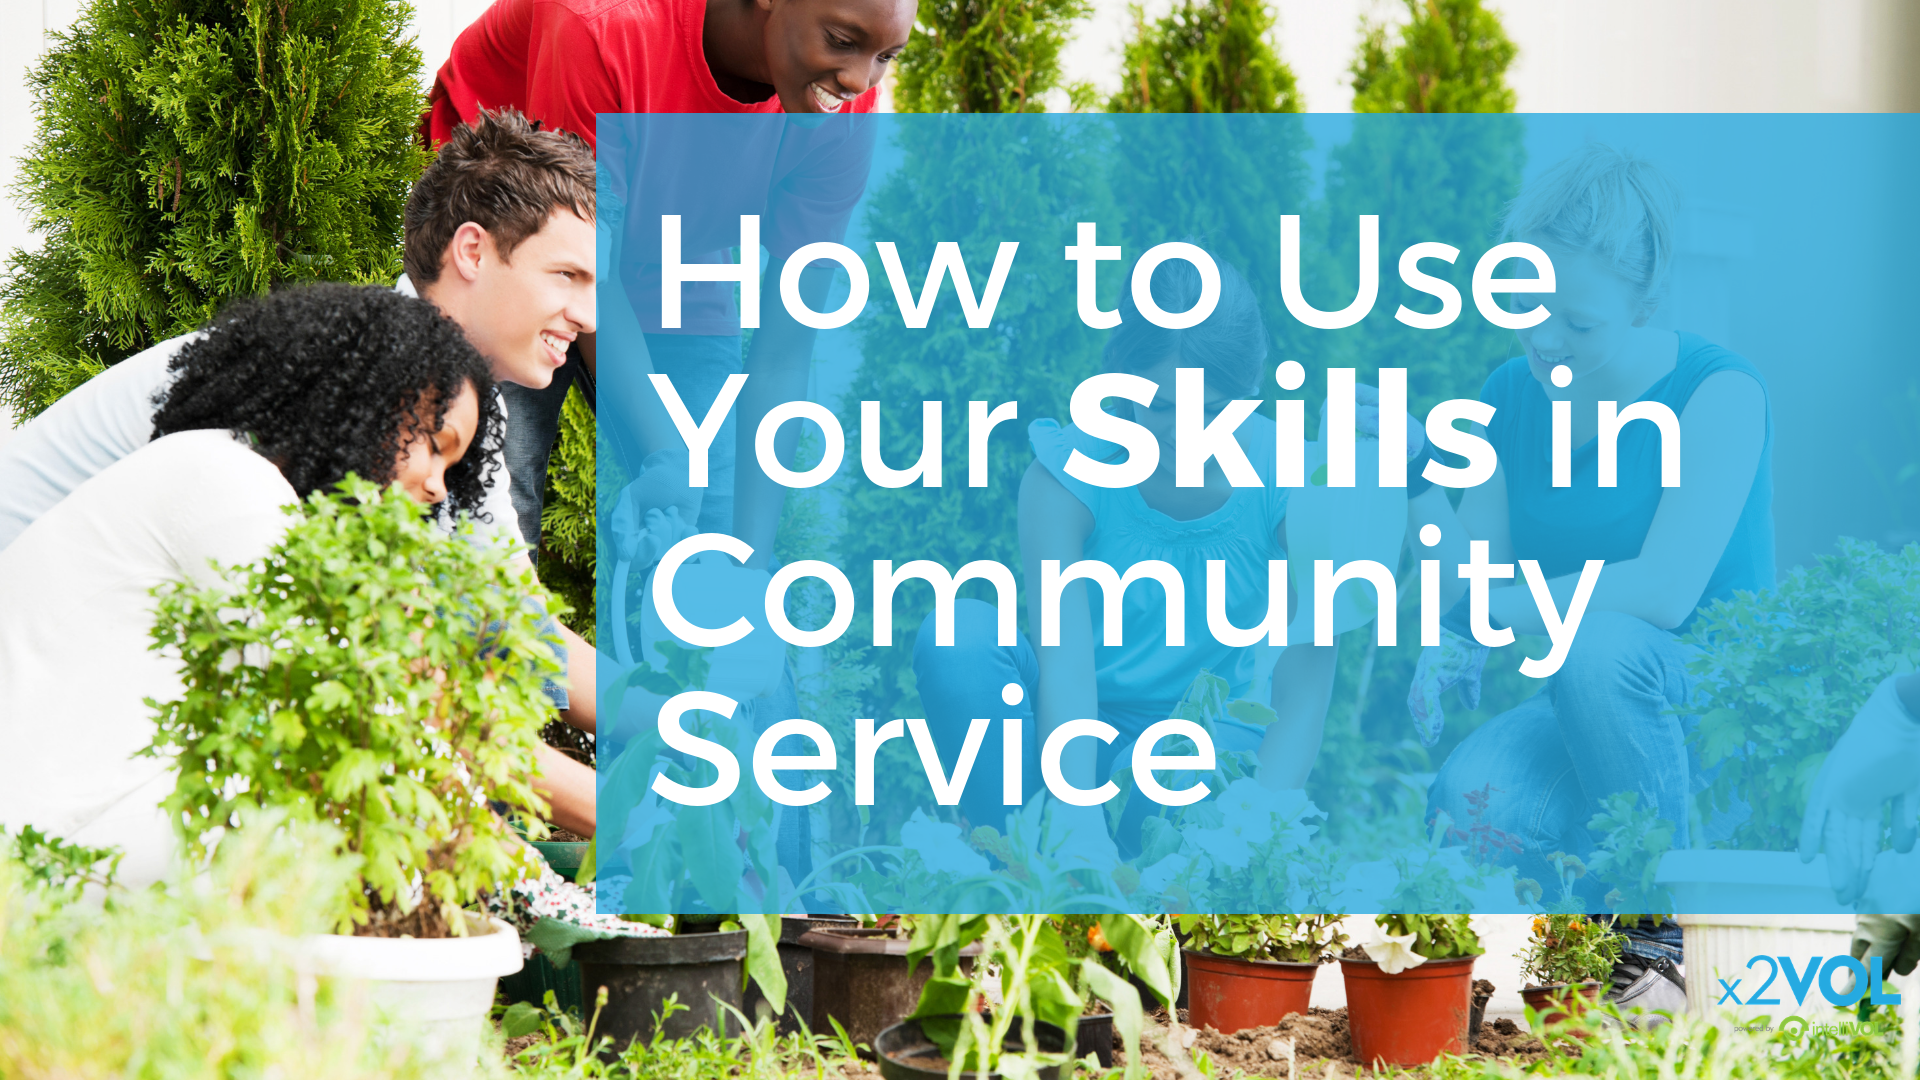 How to Use Your Skills in Community Service